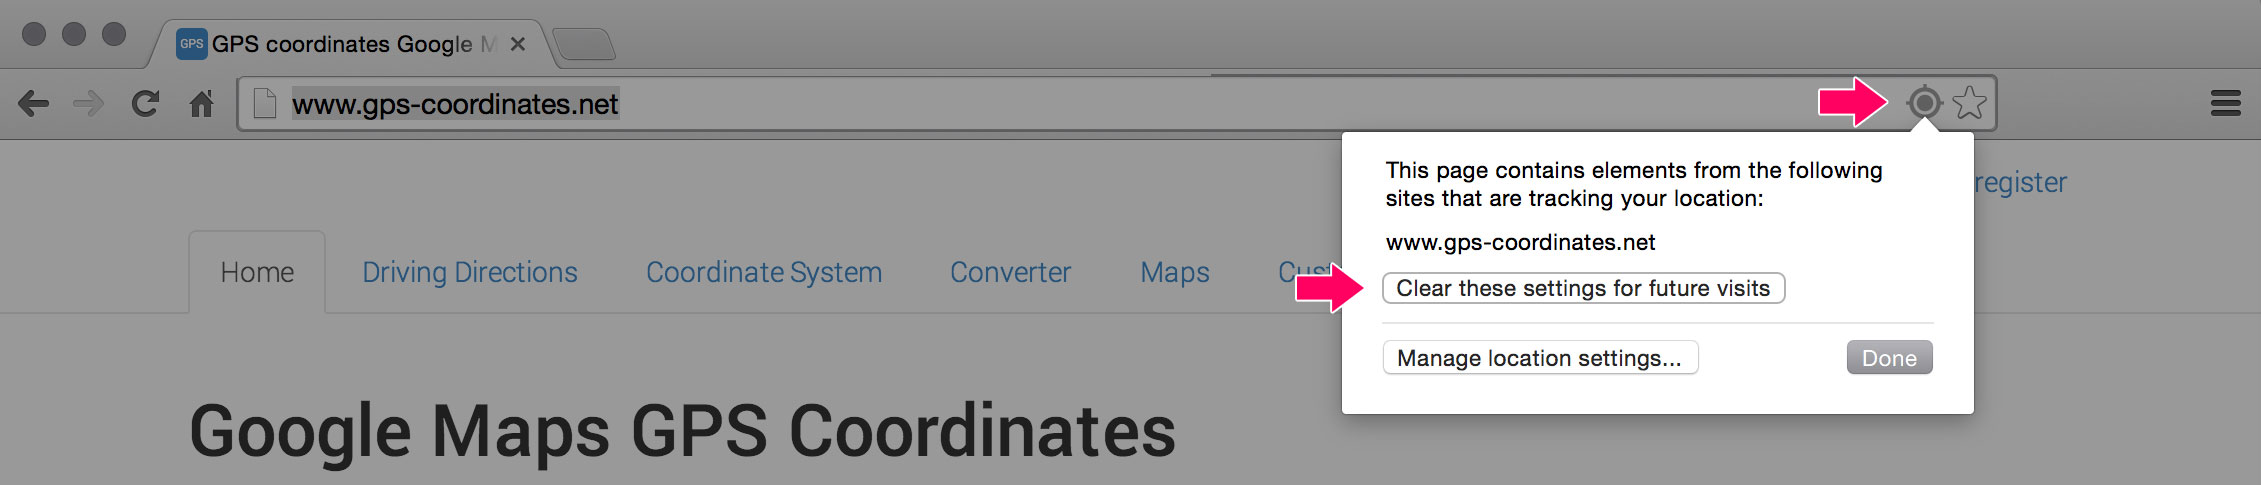 Chrome manage location settings